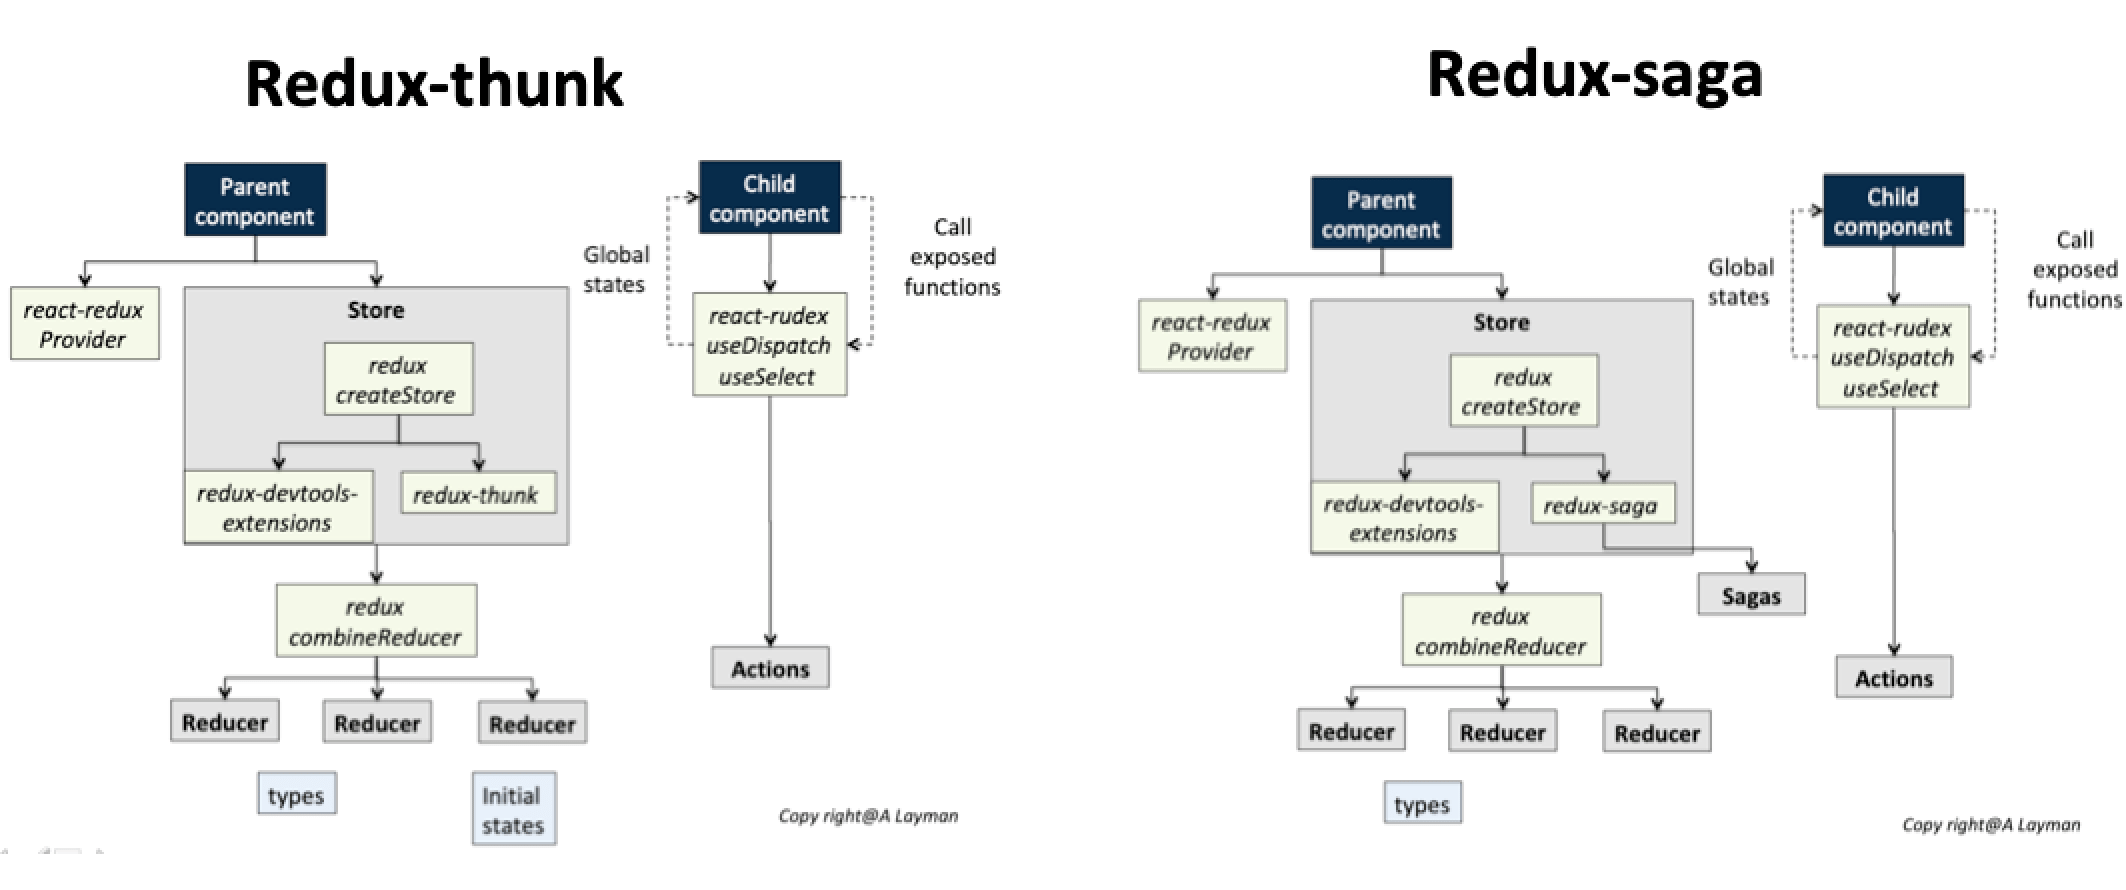 Redux Middleware- The differences between Redux-thunk and Redux-saga   by Sean HS   A Layman   Medium